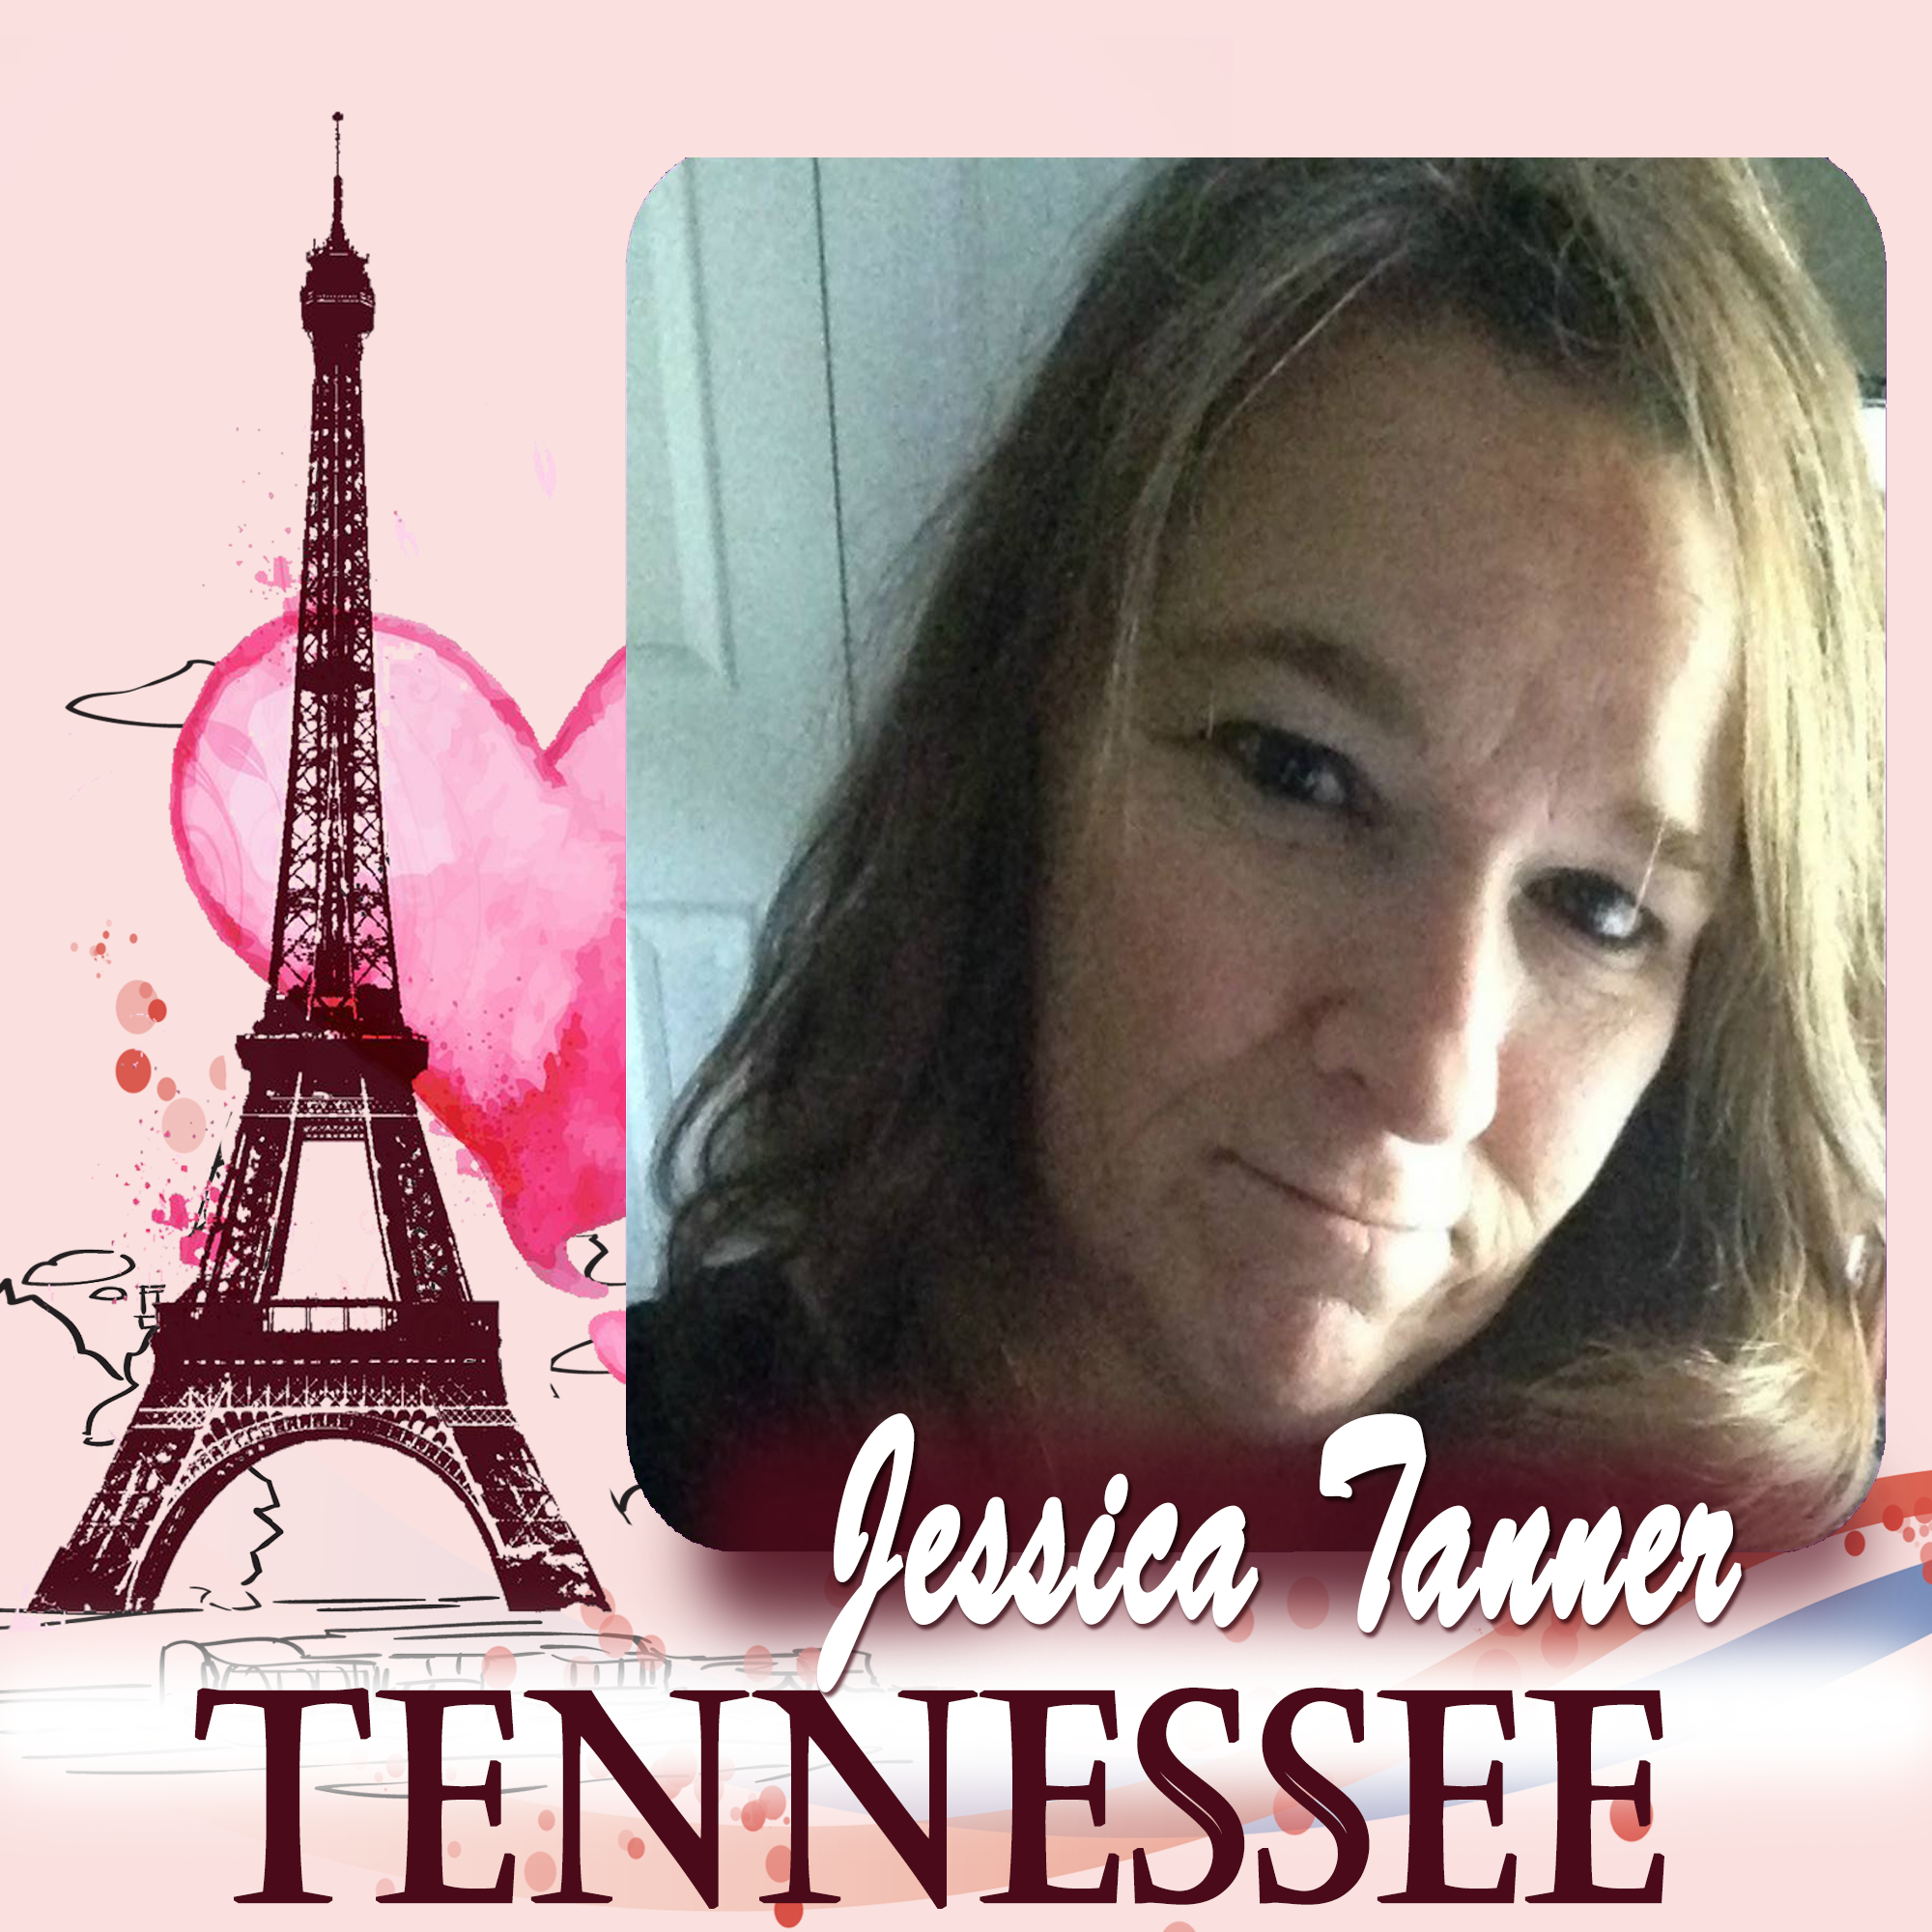 Tennessee Acti-Labs Ambassador Jessica Tanner